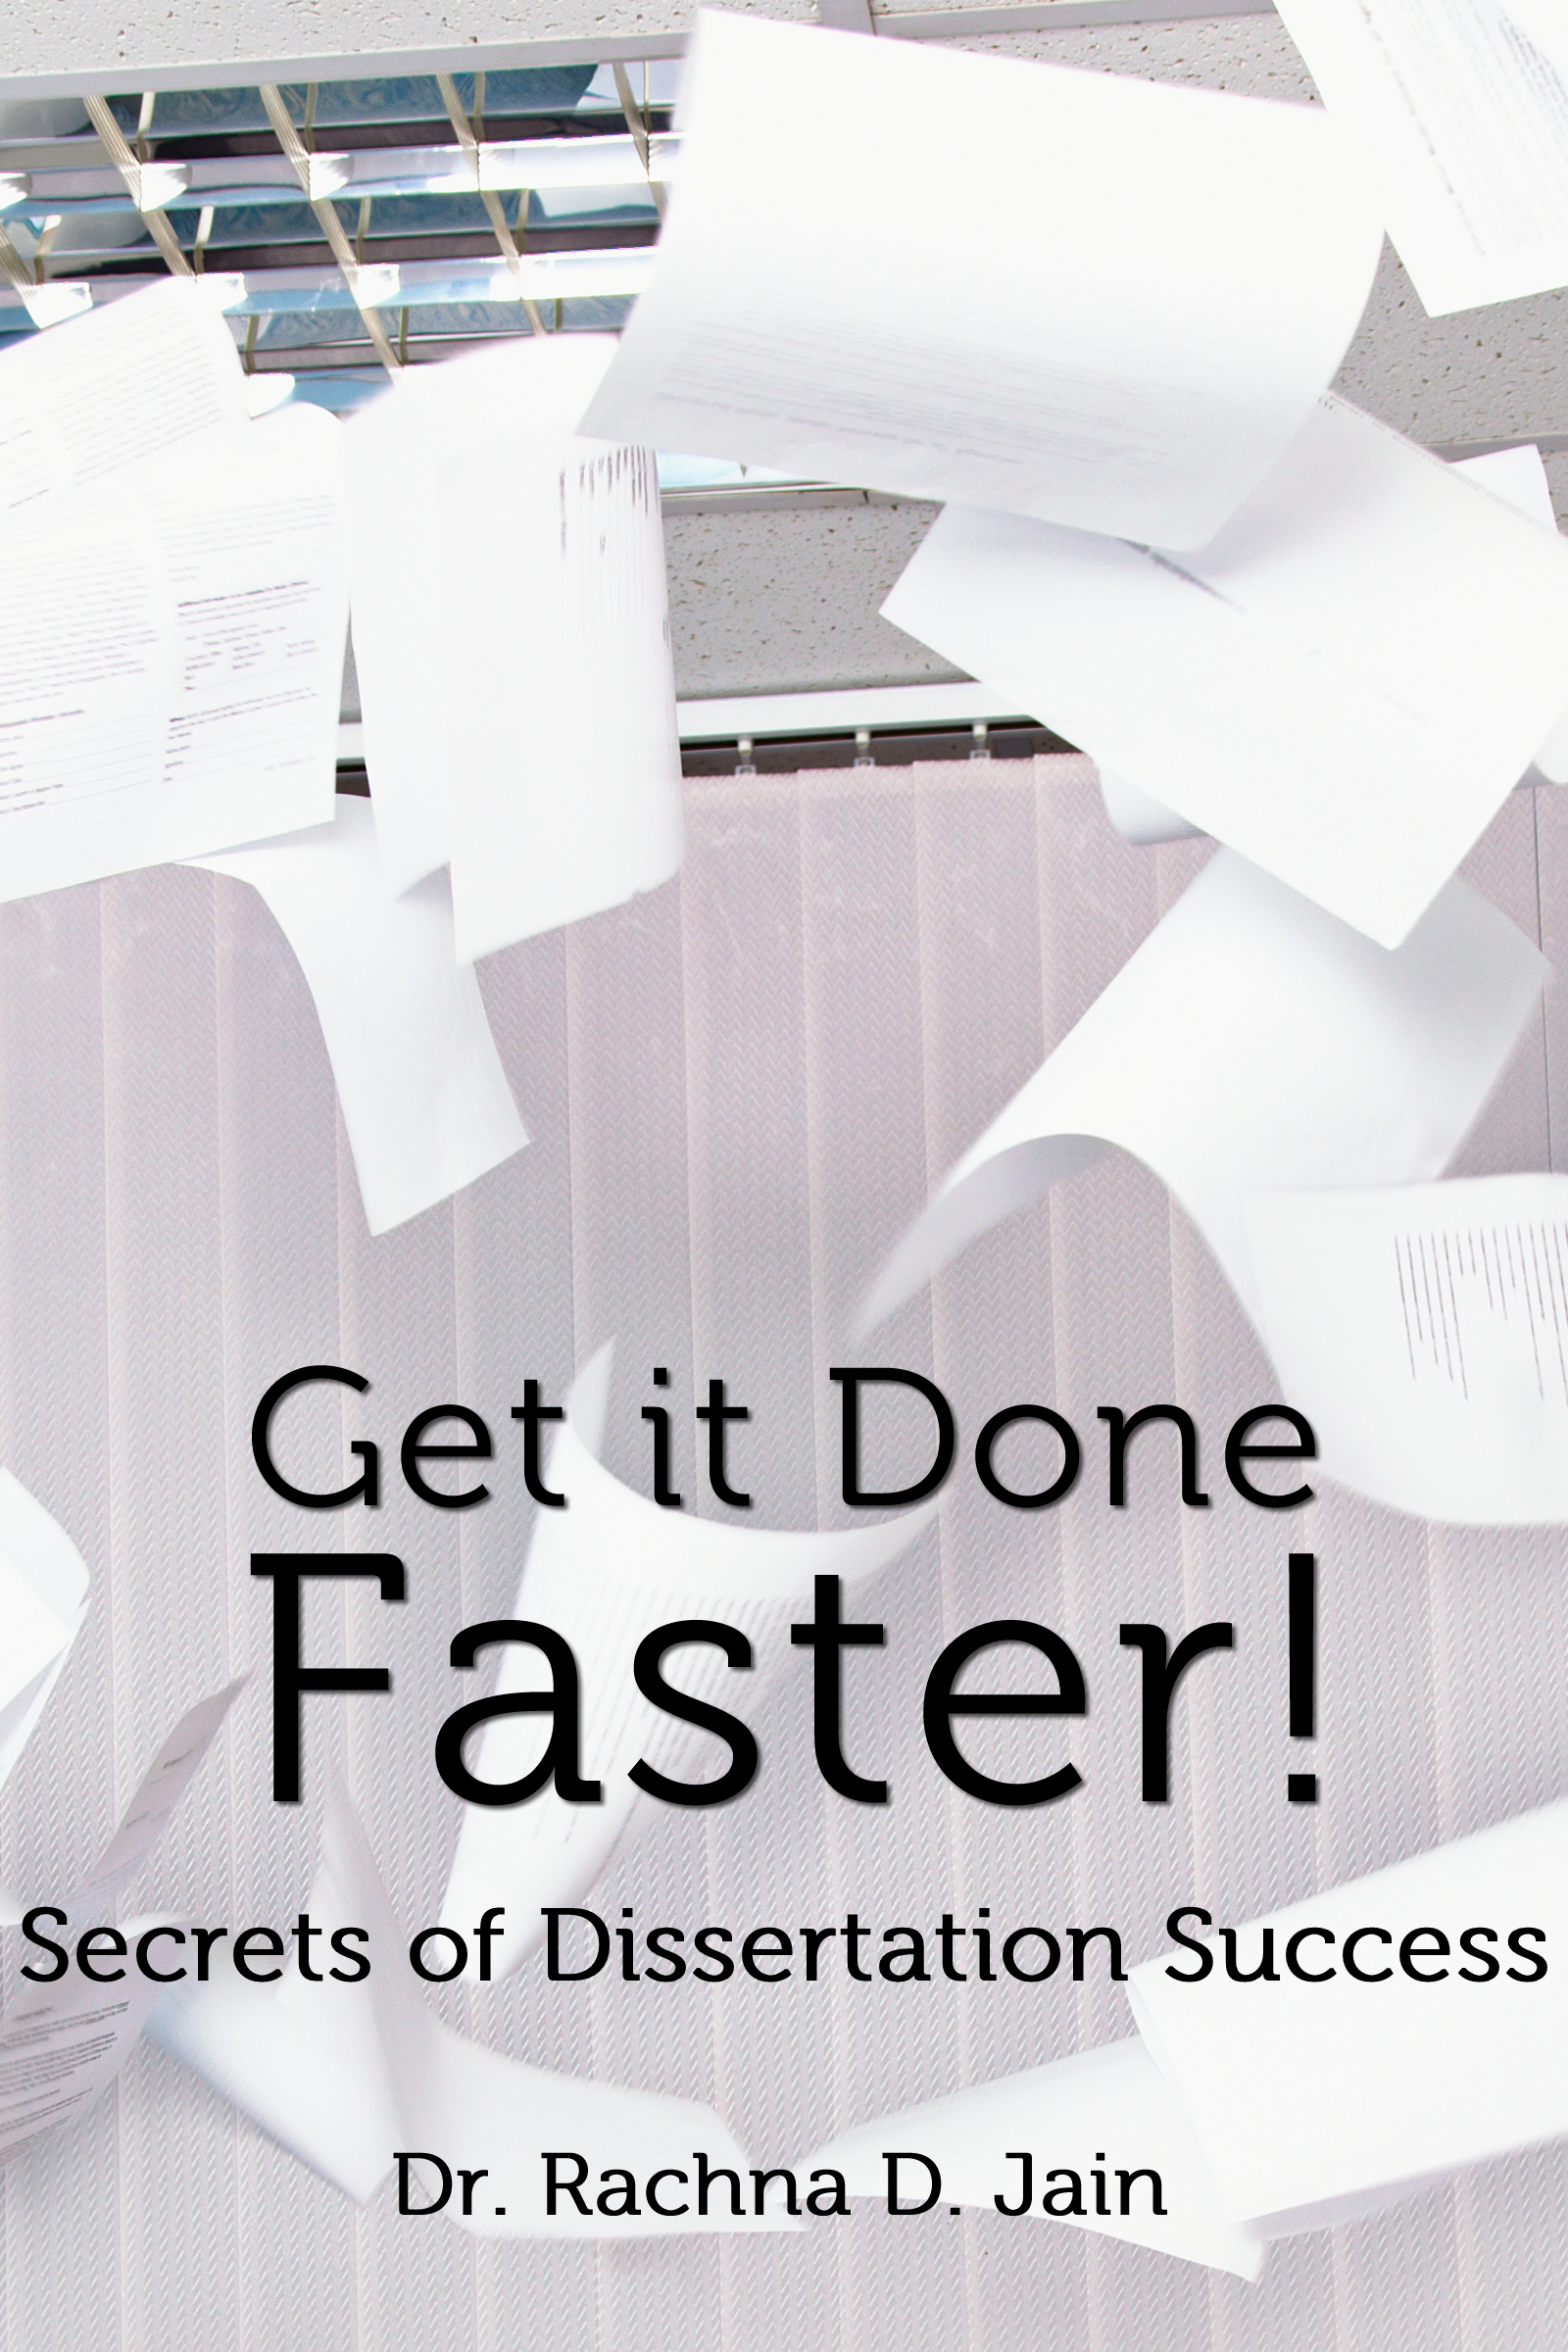 get essay done fast Starting at 8$ unbeateble value 24h delivery 479 writers active try our fast essay writing service with us you can save from 30% in most cases.